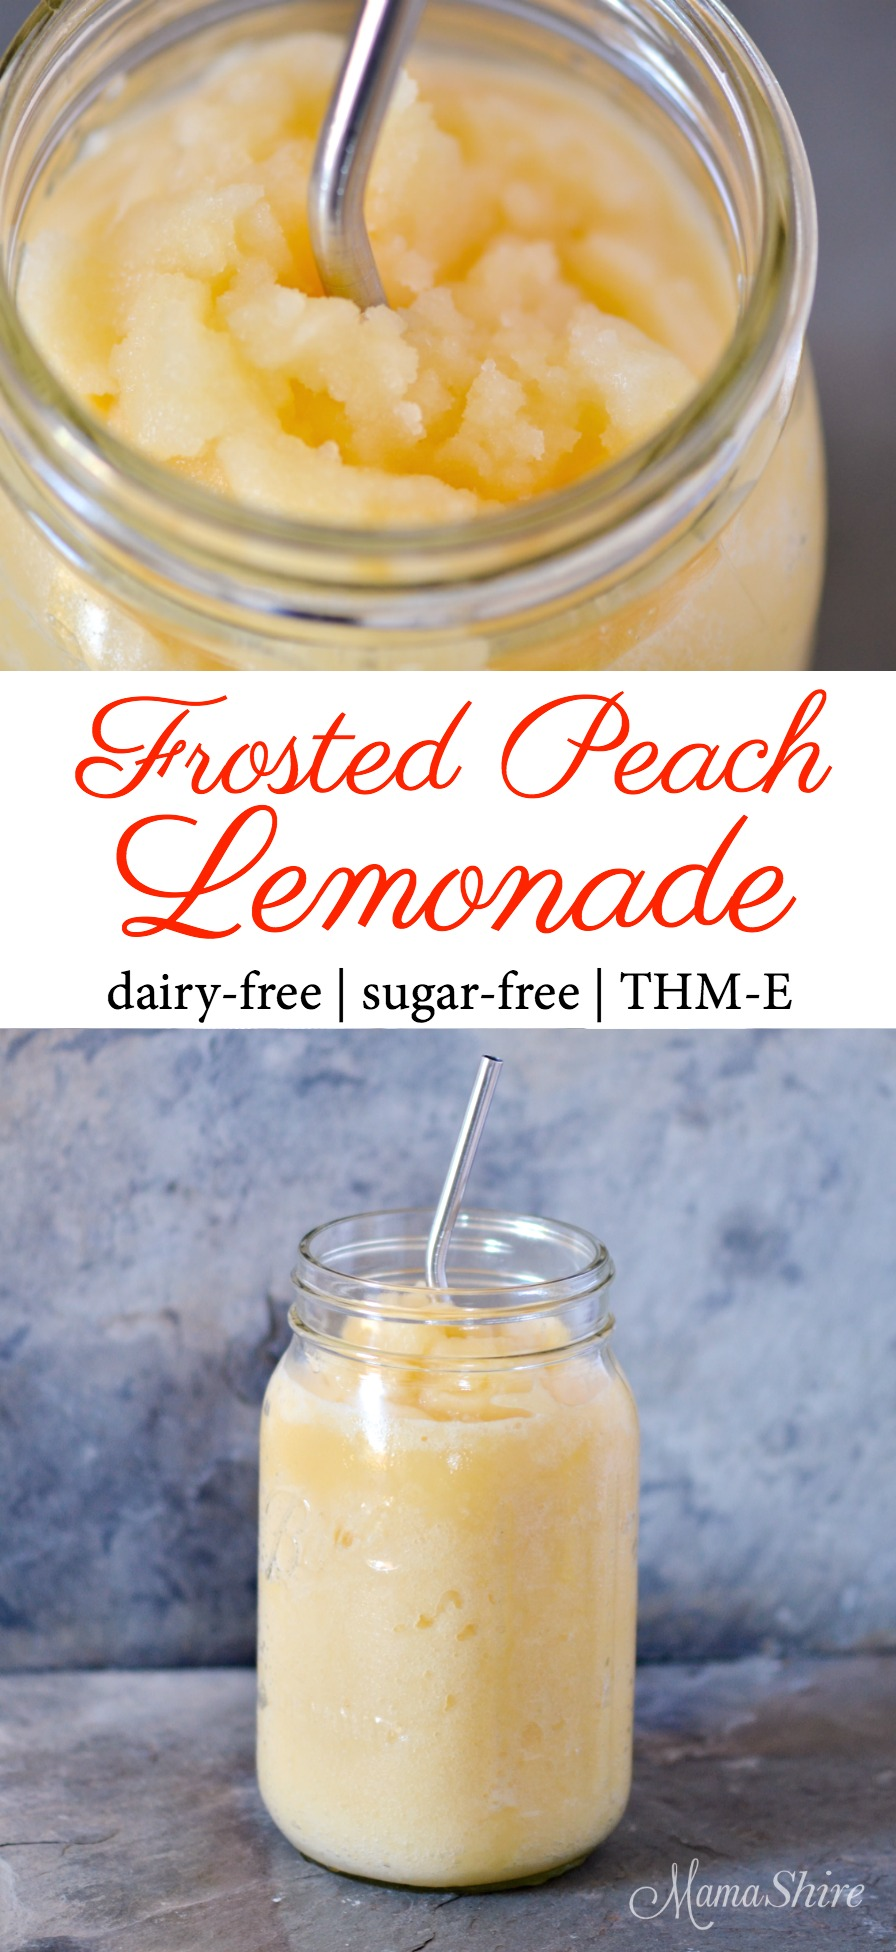 Frosted Peach Lemonade